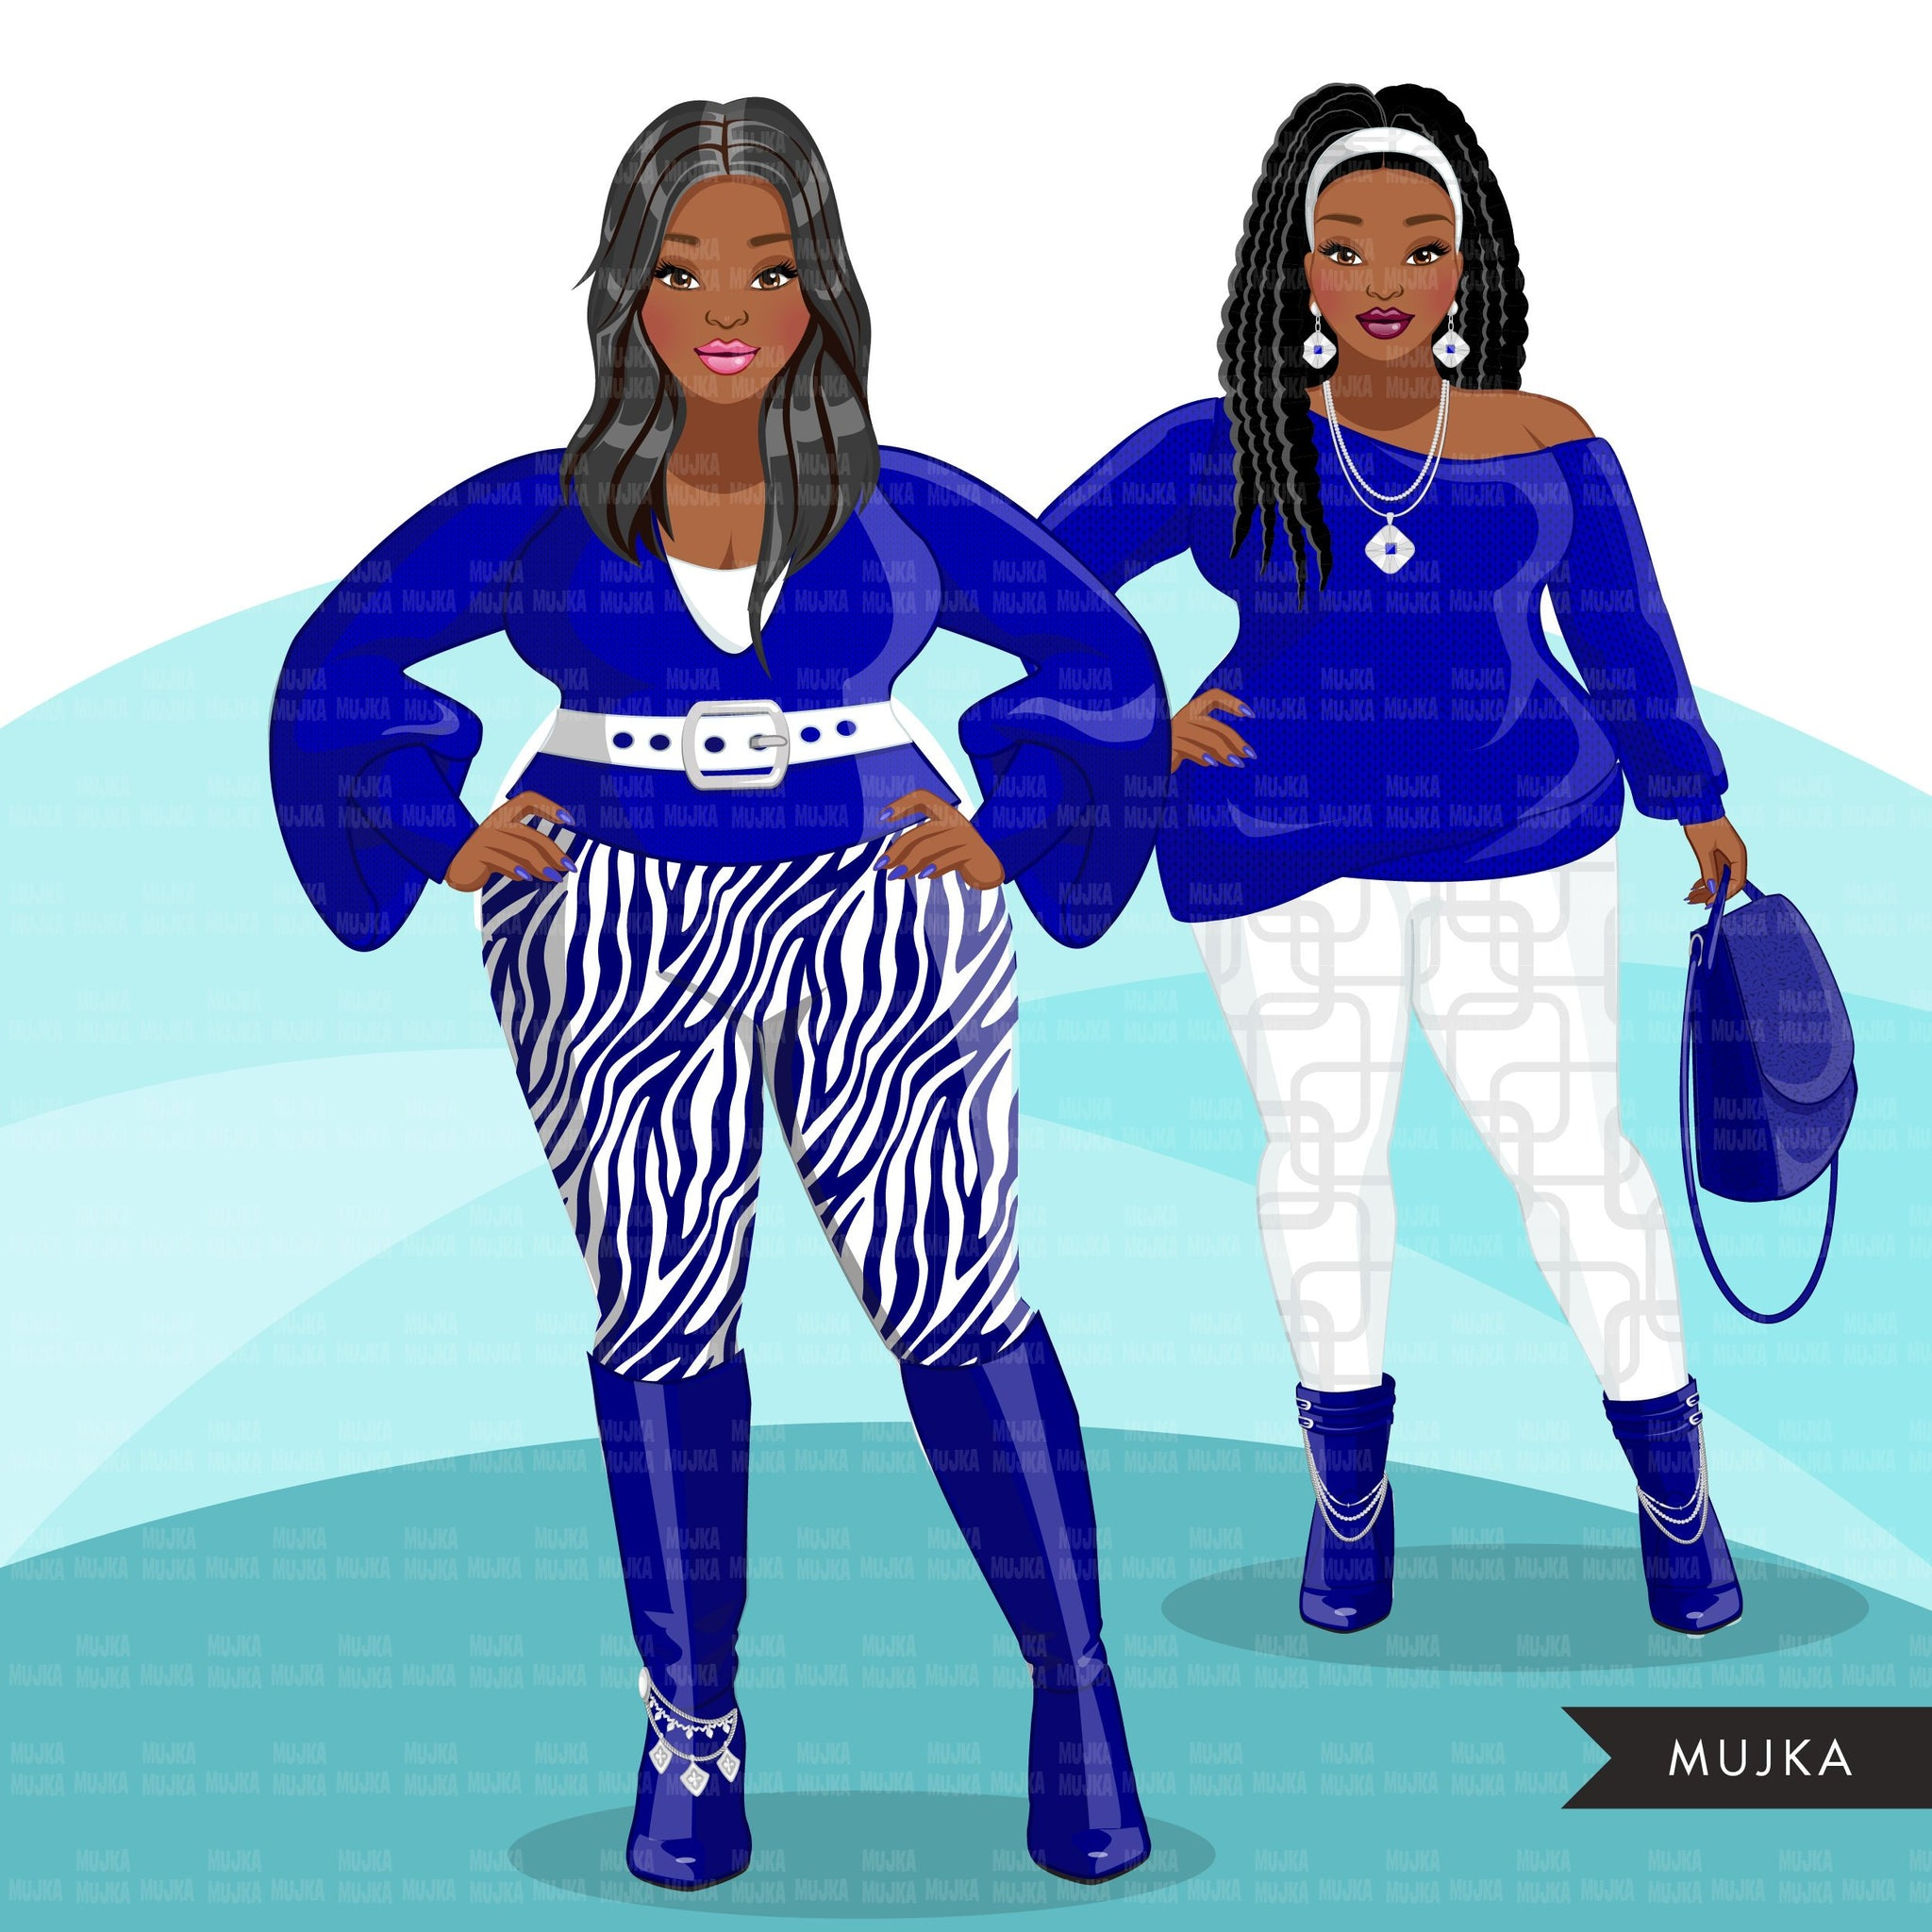 Fashion Clipart, Curvy Black woman graphics, royal blue, sisters, friends, sisterhood Sublimation designs for Cricut & Cameo, commercial PNG